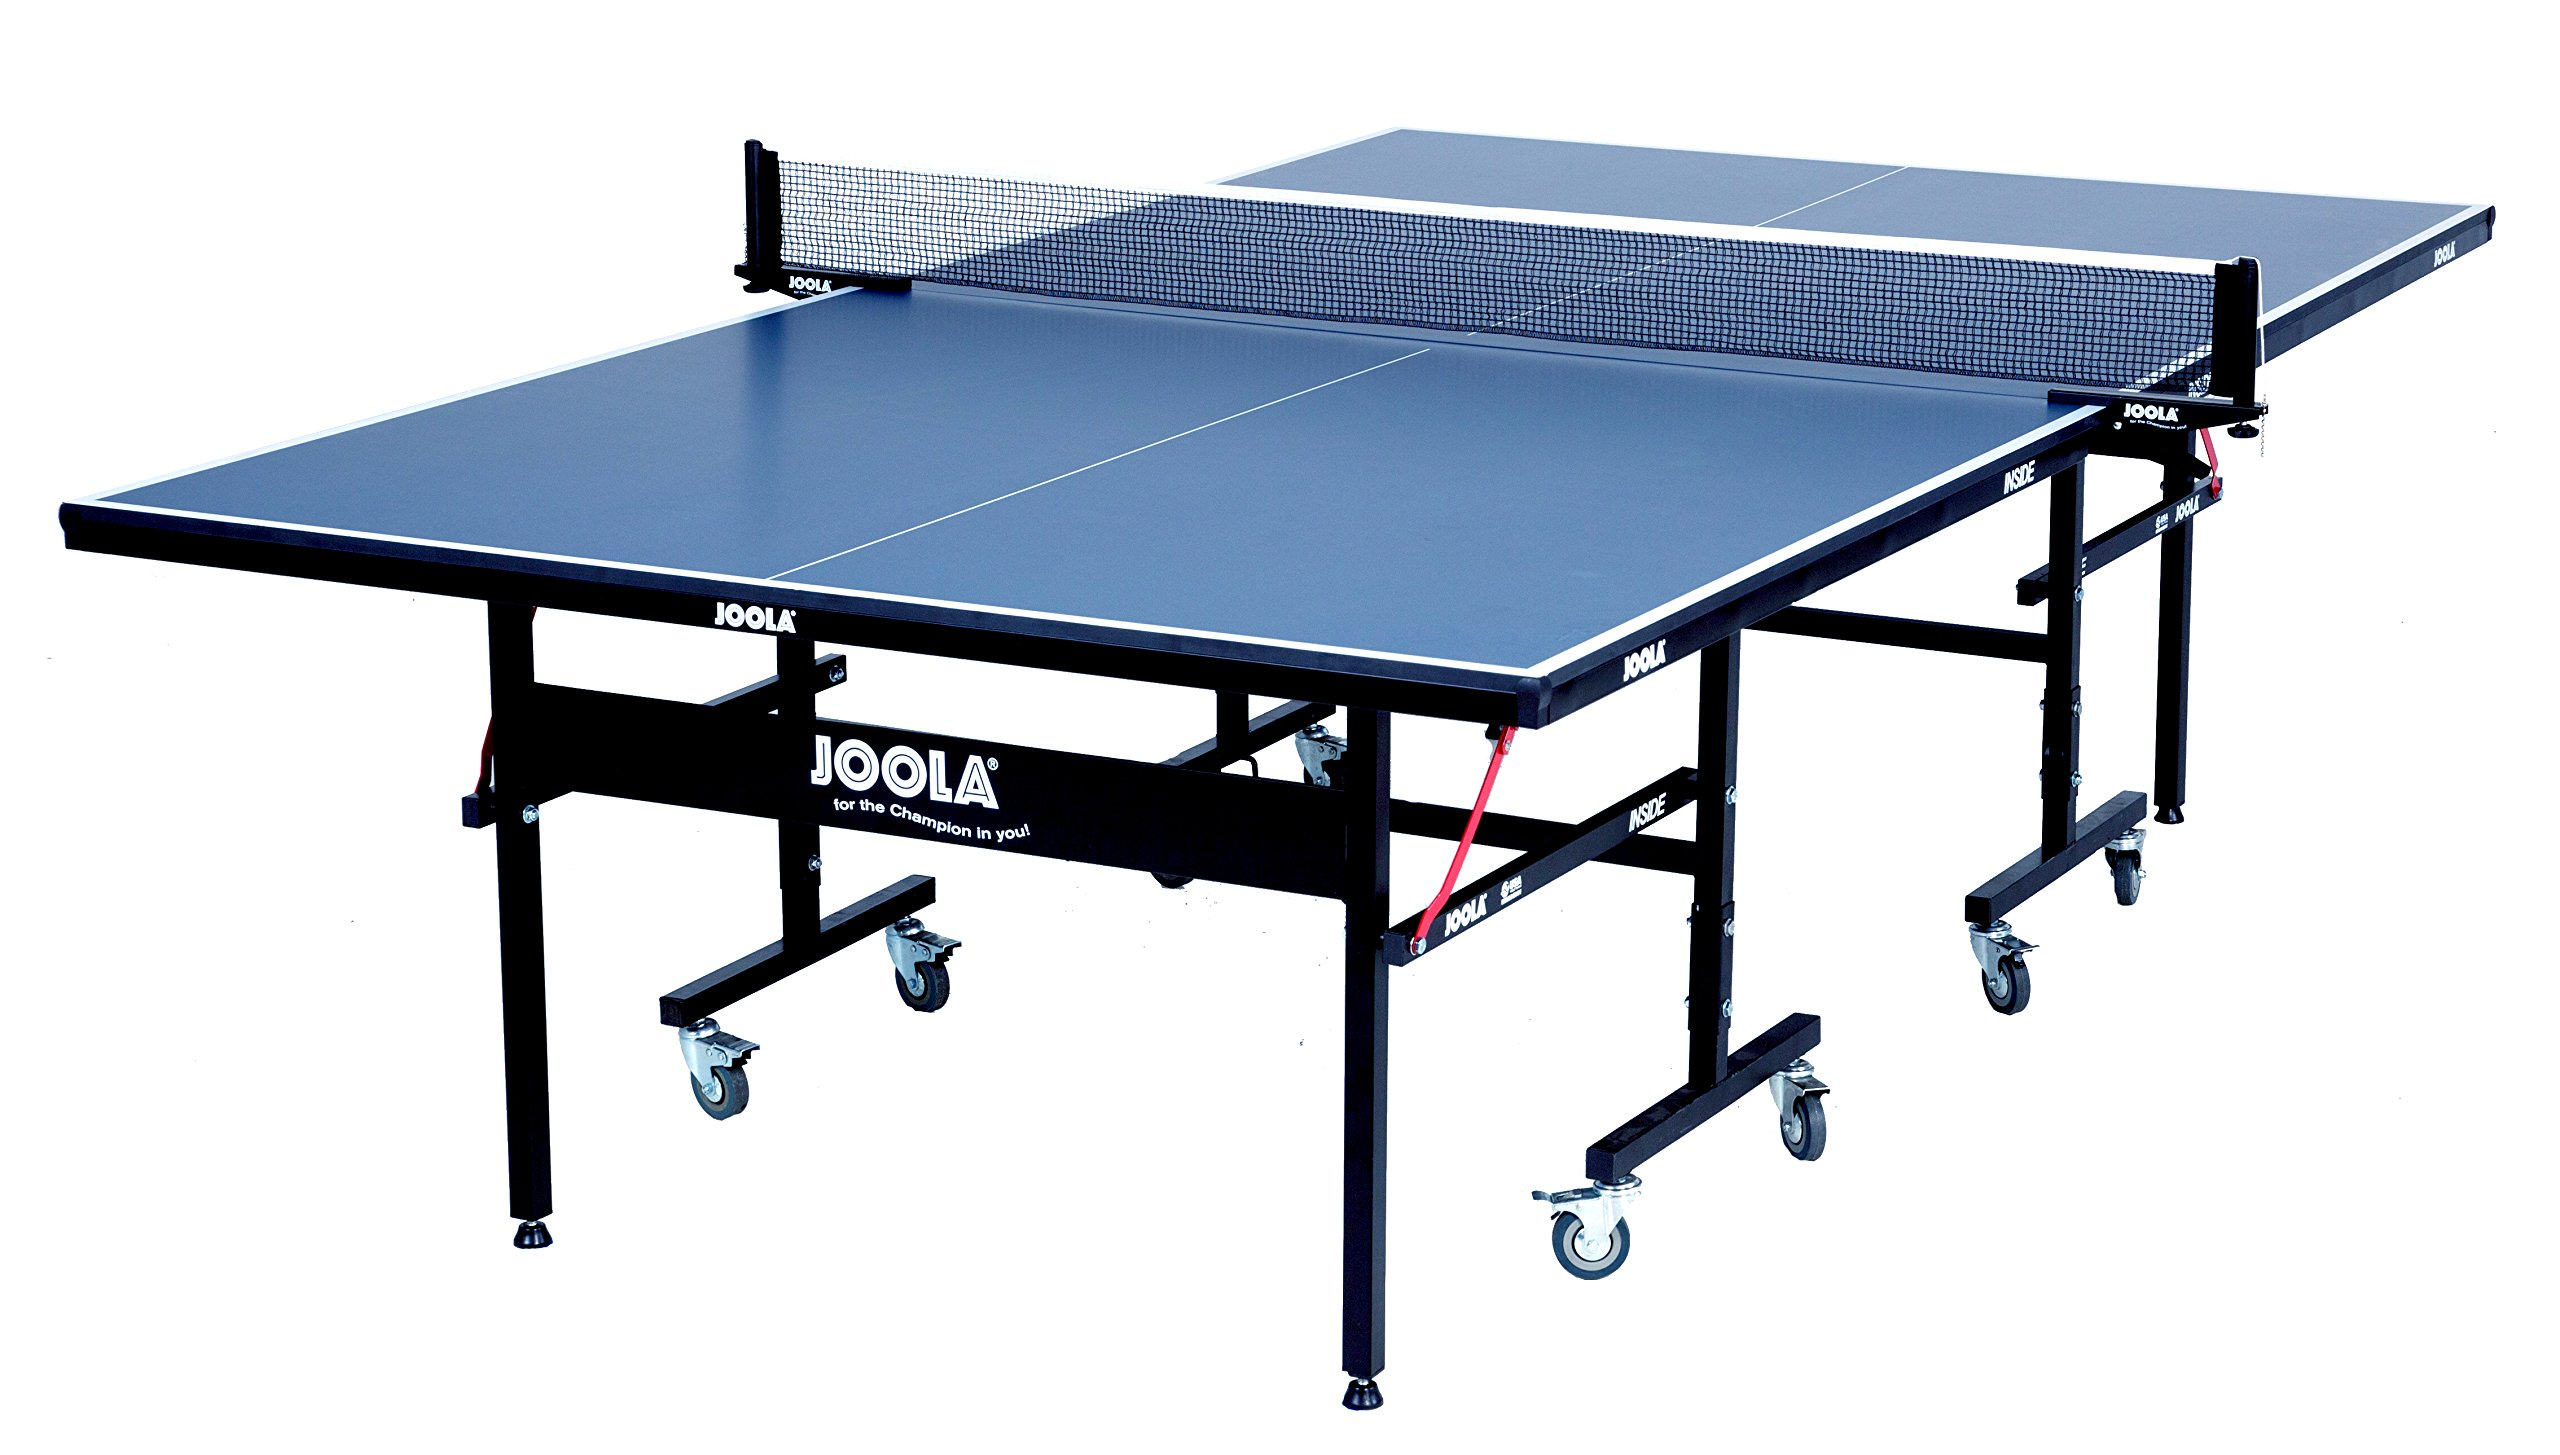 Joola Inside Table Tennis Table In Depth Review